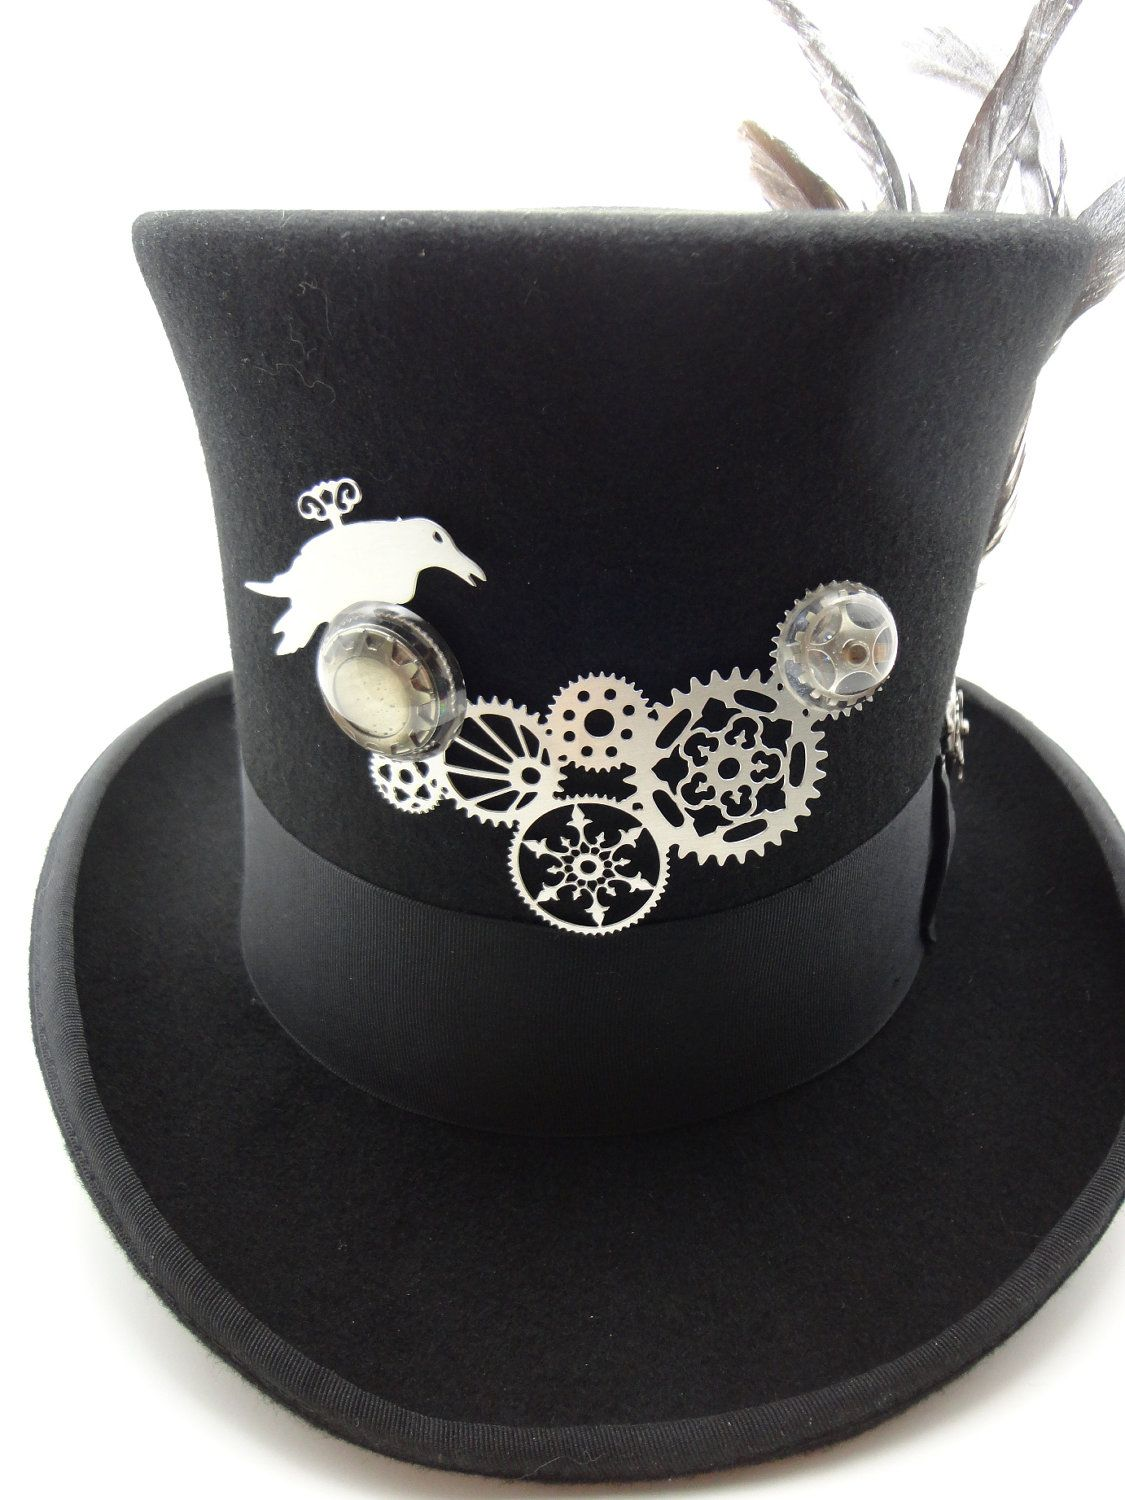 Steampunk Hat Black Top Hat in Wool Felt Size with Large